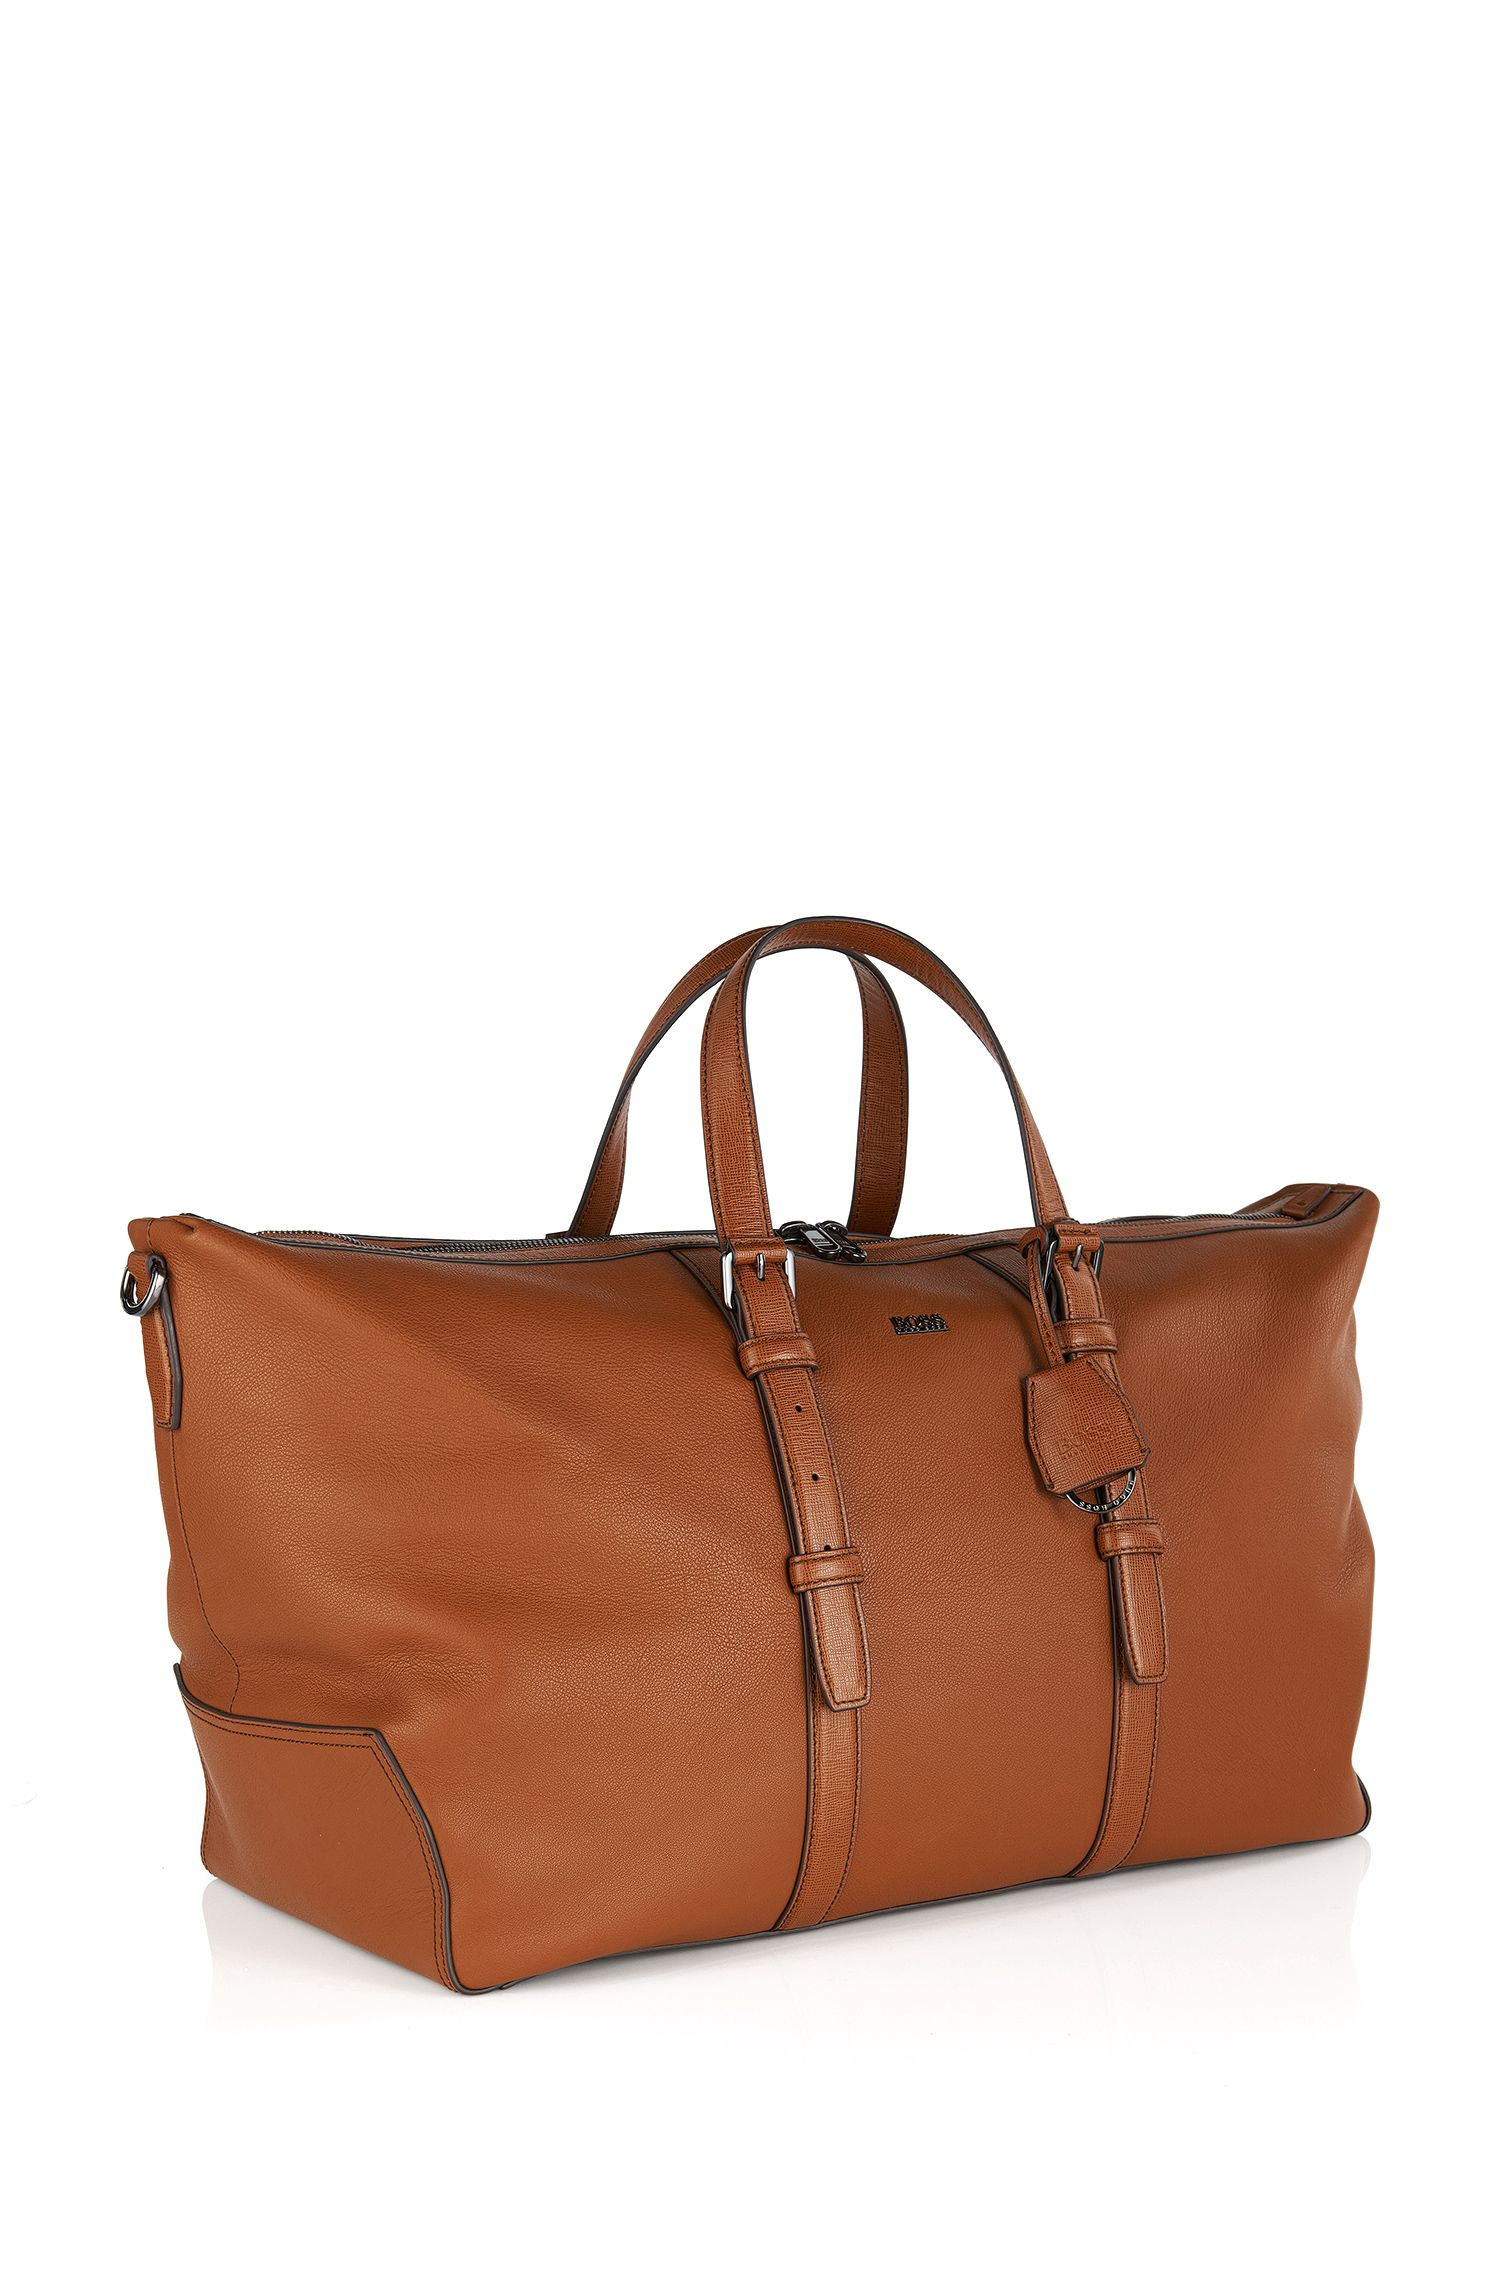 'Mass' | Leather Weekender with Detachable Strap